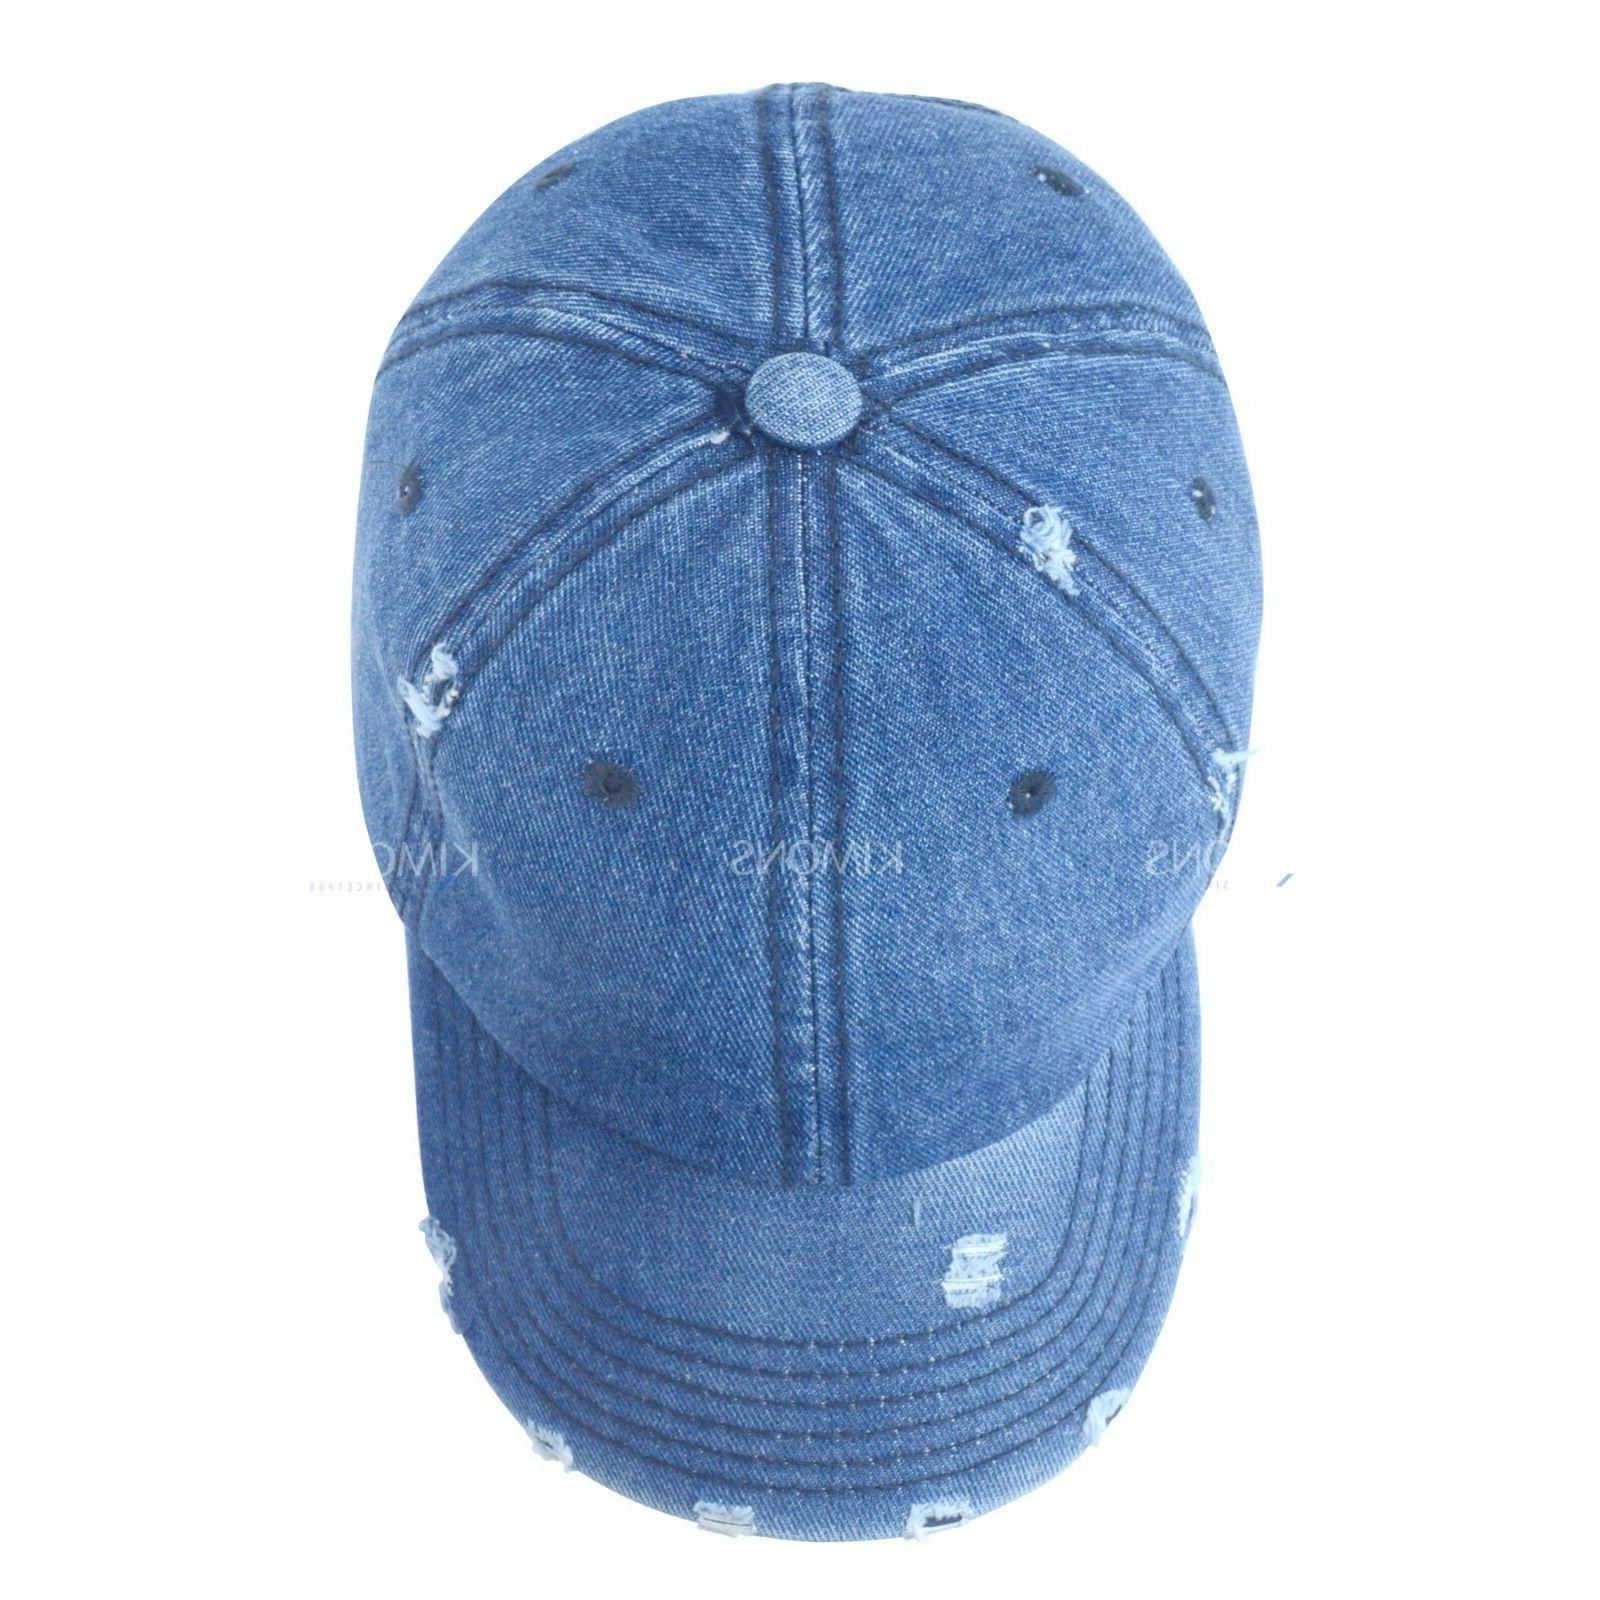 12d561244cbfb4 Vintage Distressed 100% Cotton Solid Denim Cap. Vintage 100% Solid Baseball  Cap Hat Ball Washed